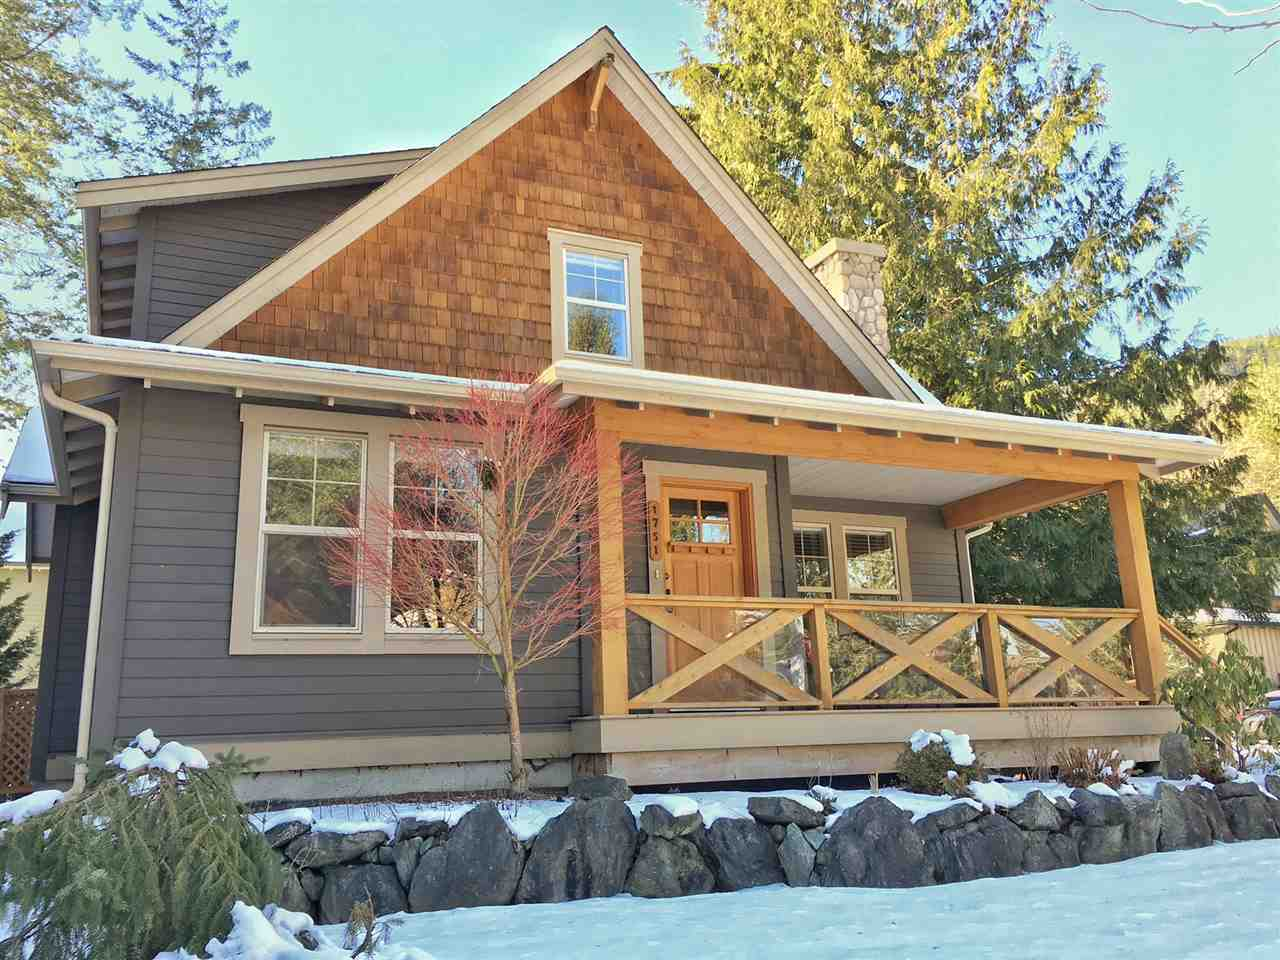 Just Added This ListingLocated In The Beautiful Cottages At Cultus Lake Community 2 Bedroom Loft Property Could Be Your Weekend Retreat